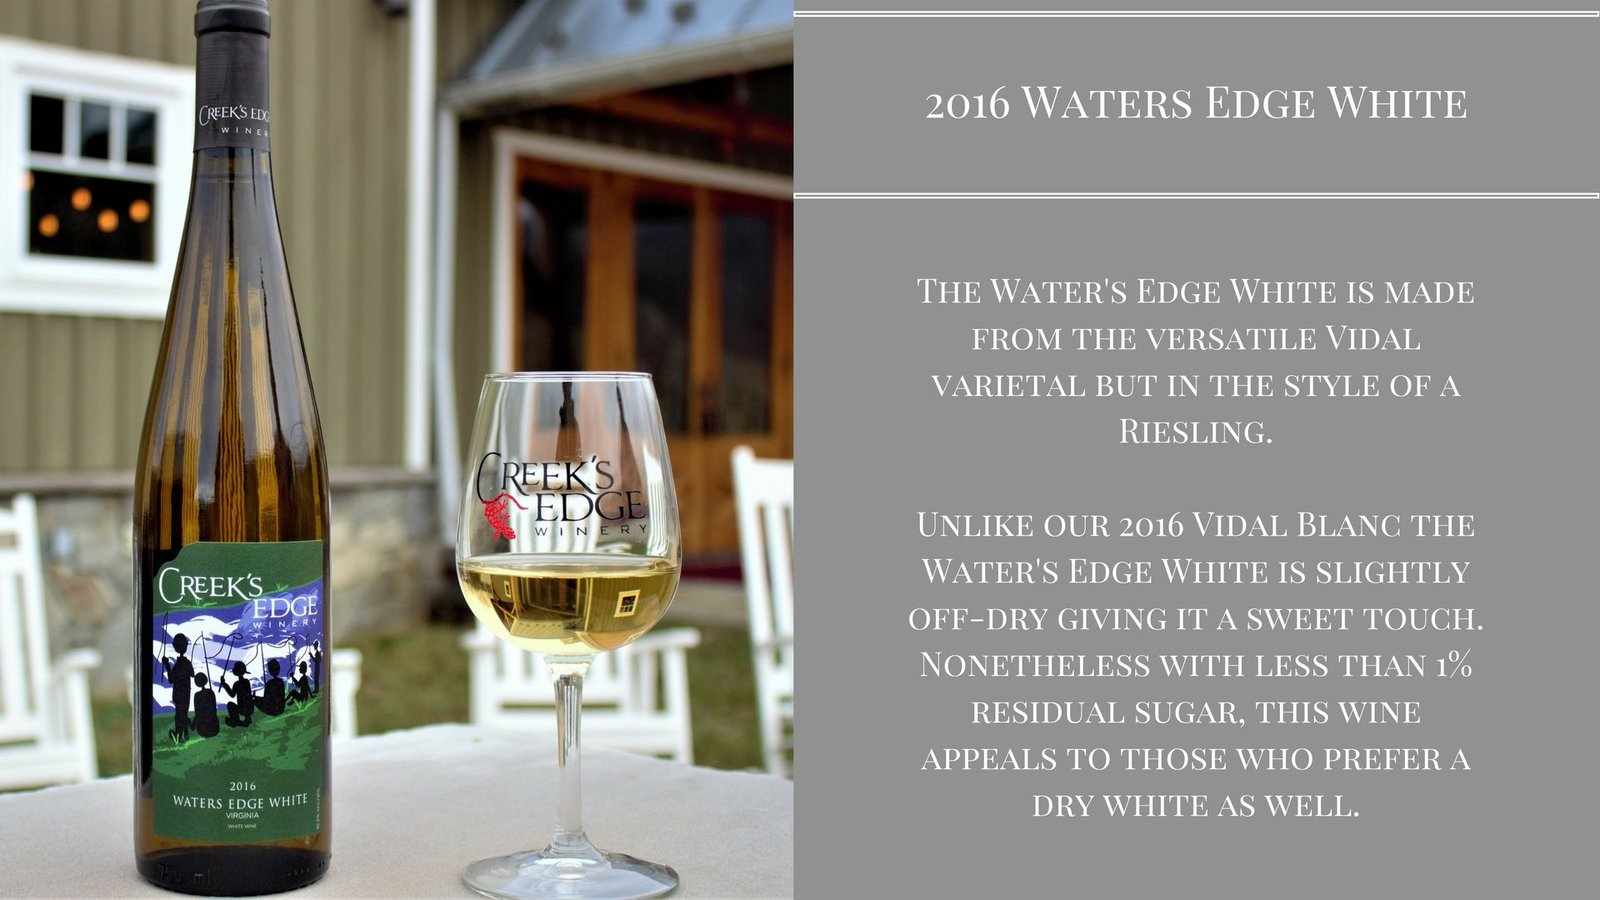 2016 Waters Edge White